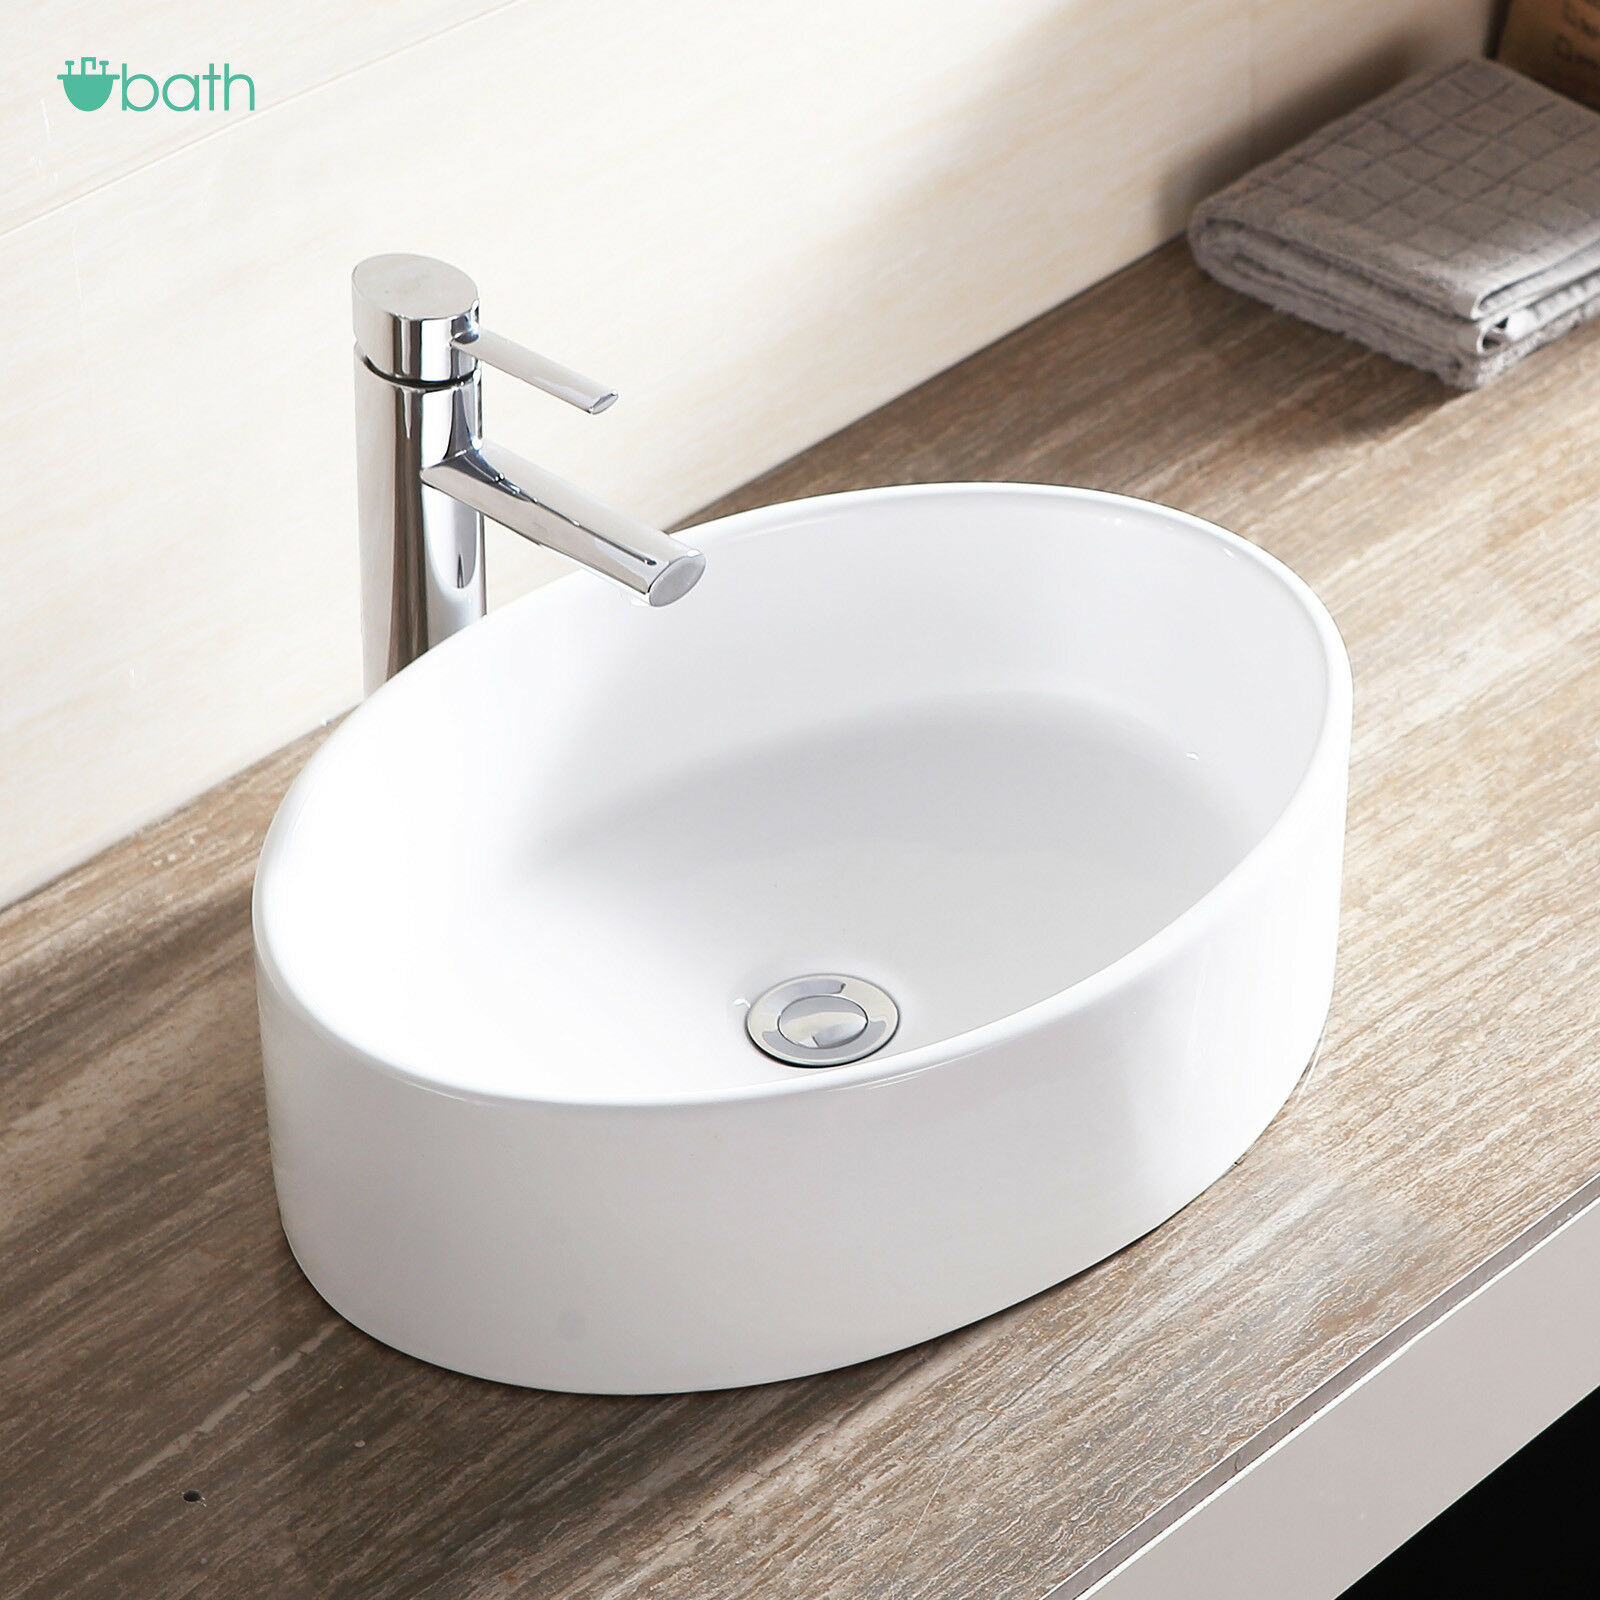 bowl sinks for bathrooms white ceramic oval sink bathroom vessel bowl porcelain 17495 | $ 57